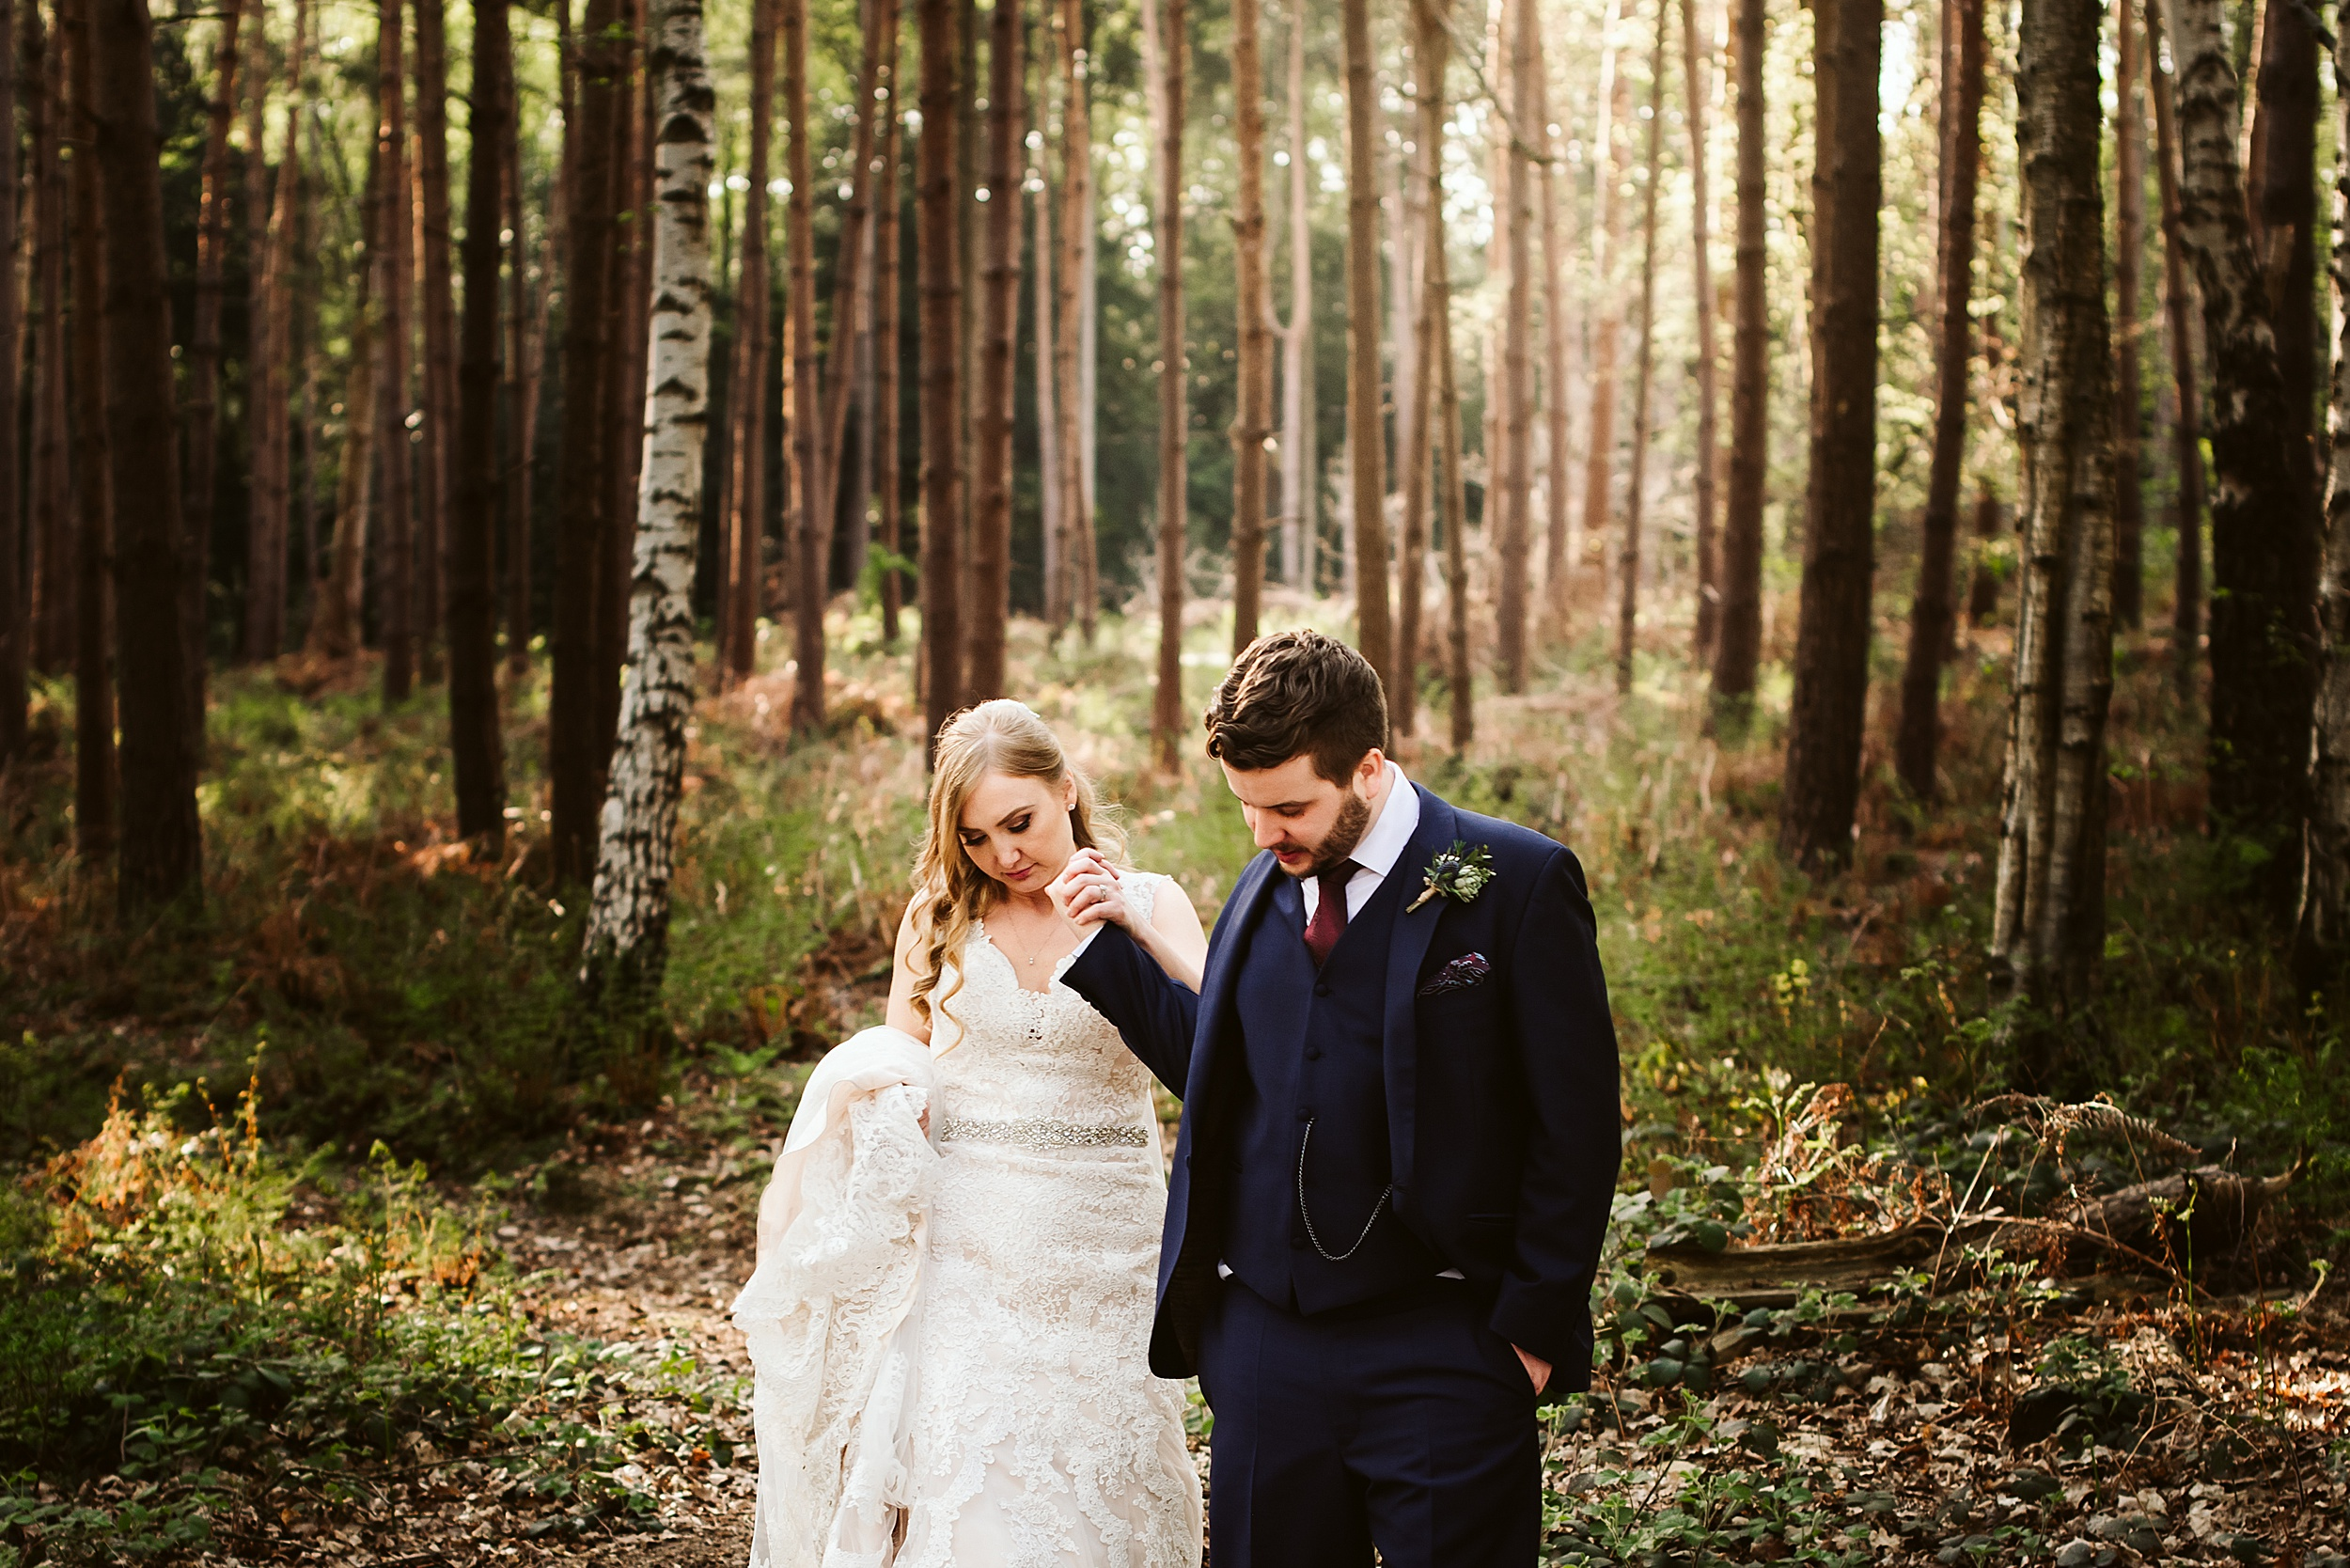 Peckforton_Castle_Cheshire_Toronto_Wedding_Photographer_UK_Destination_Wedding_0101.jpg